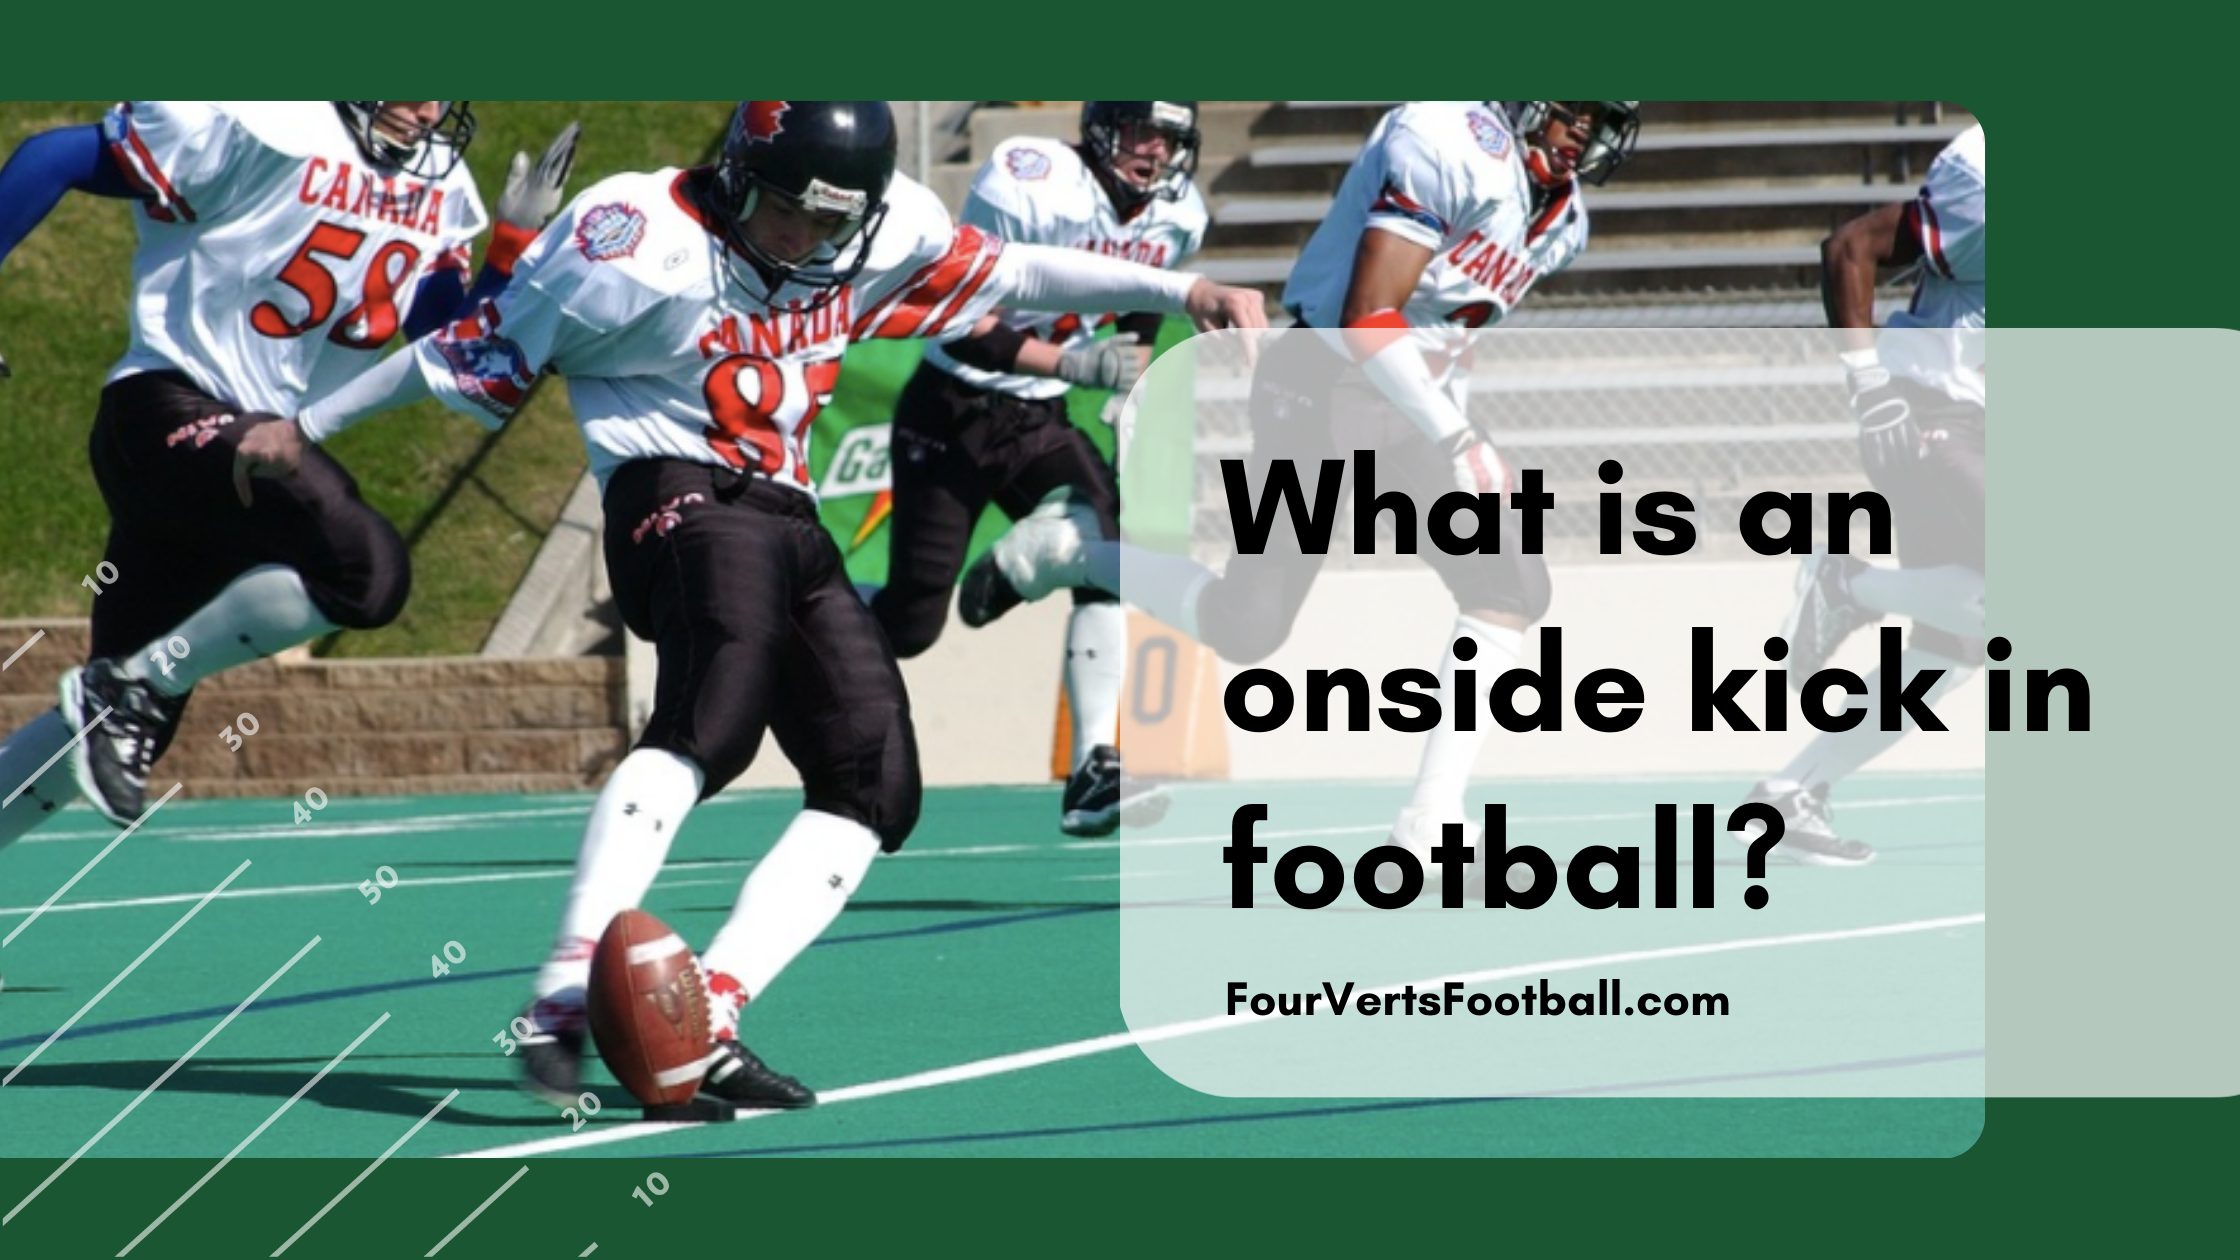 What is an onside kick